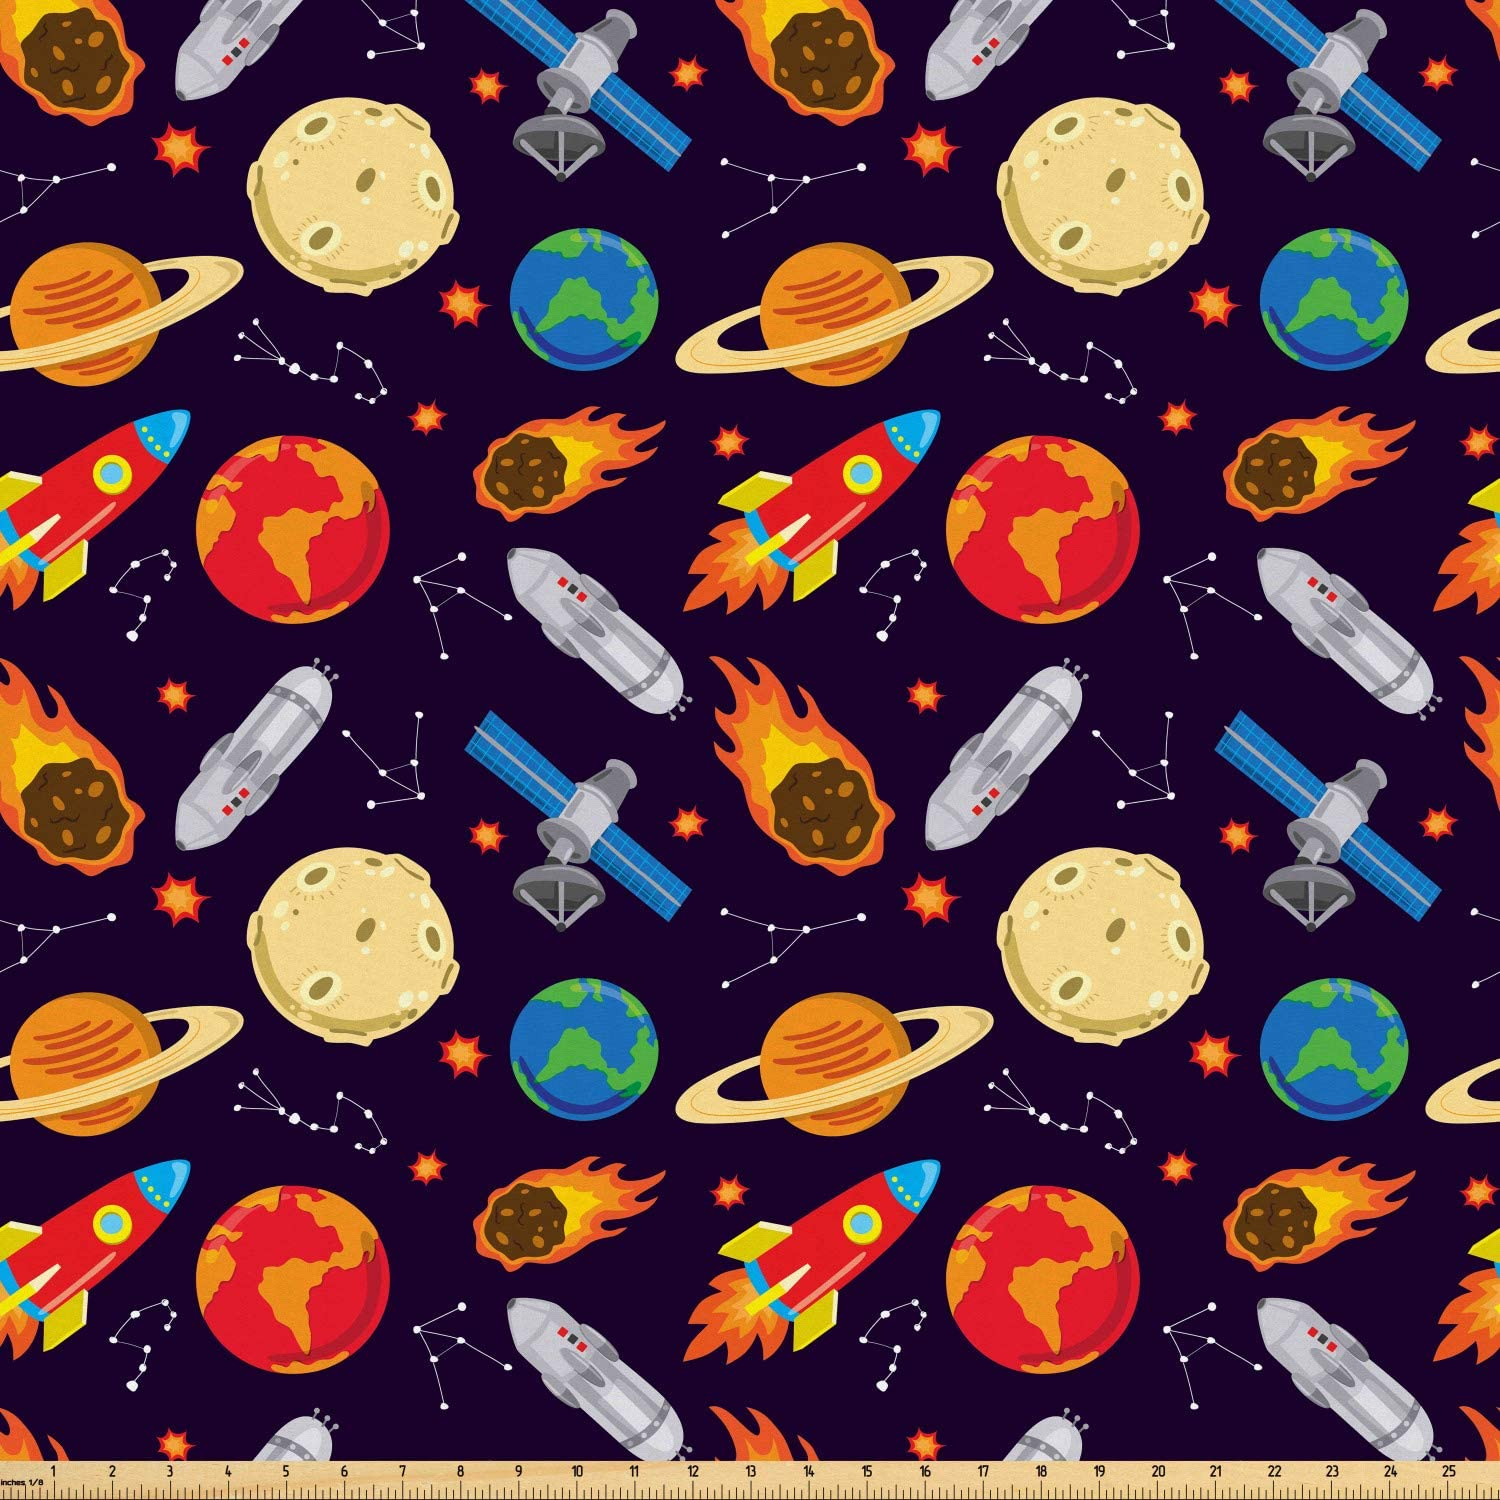 Ambesonne Space Fabric by The Yard, Universe Themed Illustration with Earth Moon Constellations Saturn Rockets Stars, Microfiber Fabric for Arts and Crafts Textiles & Decor, 3 Yards, Multicolor